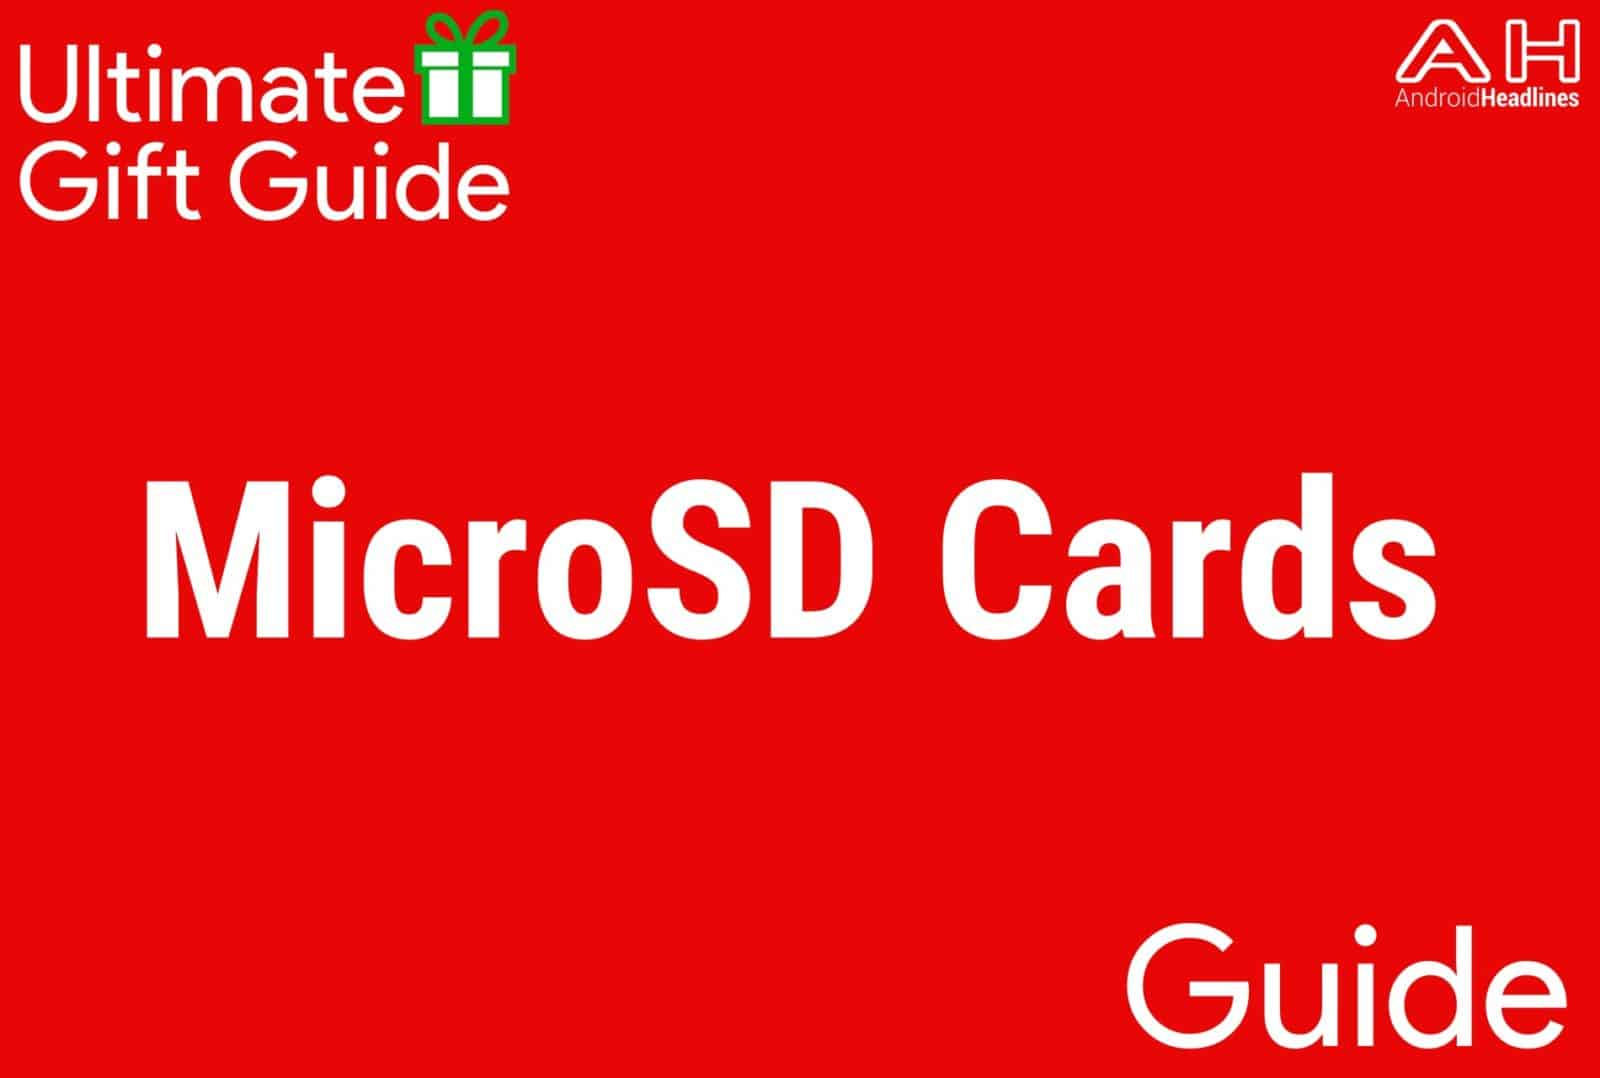 MicroSD Cards - Gift Guide 2015